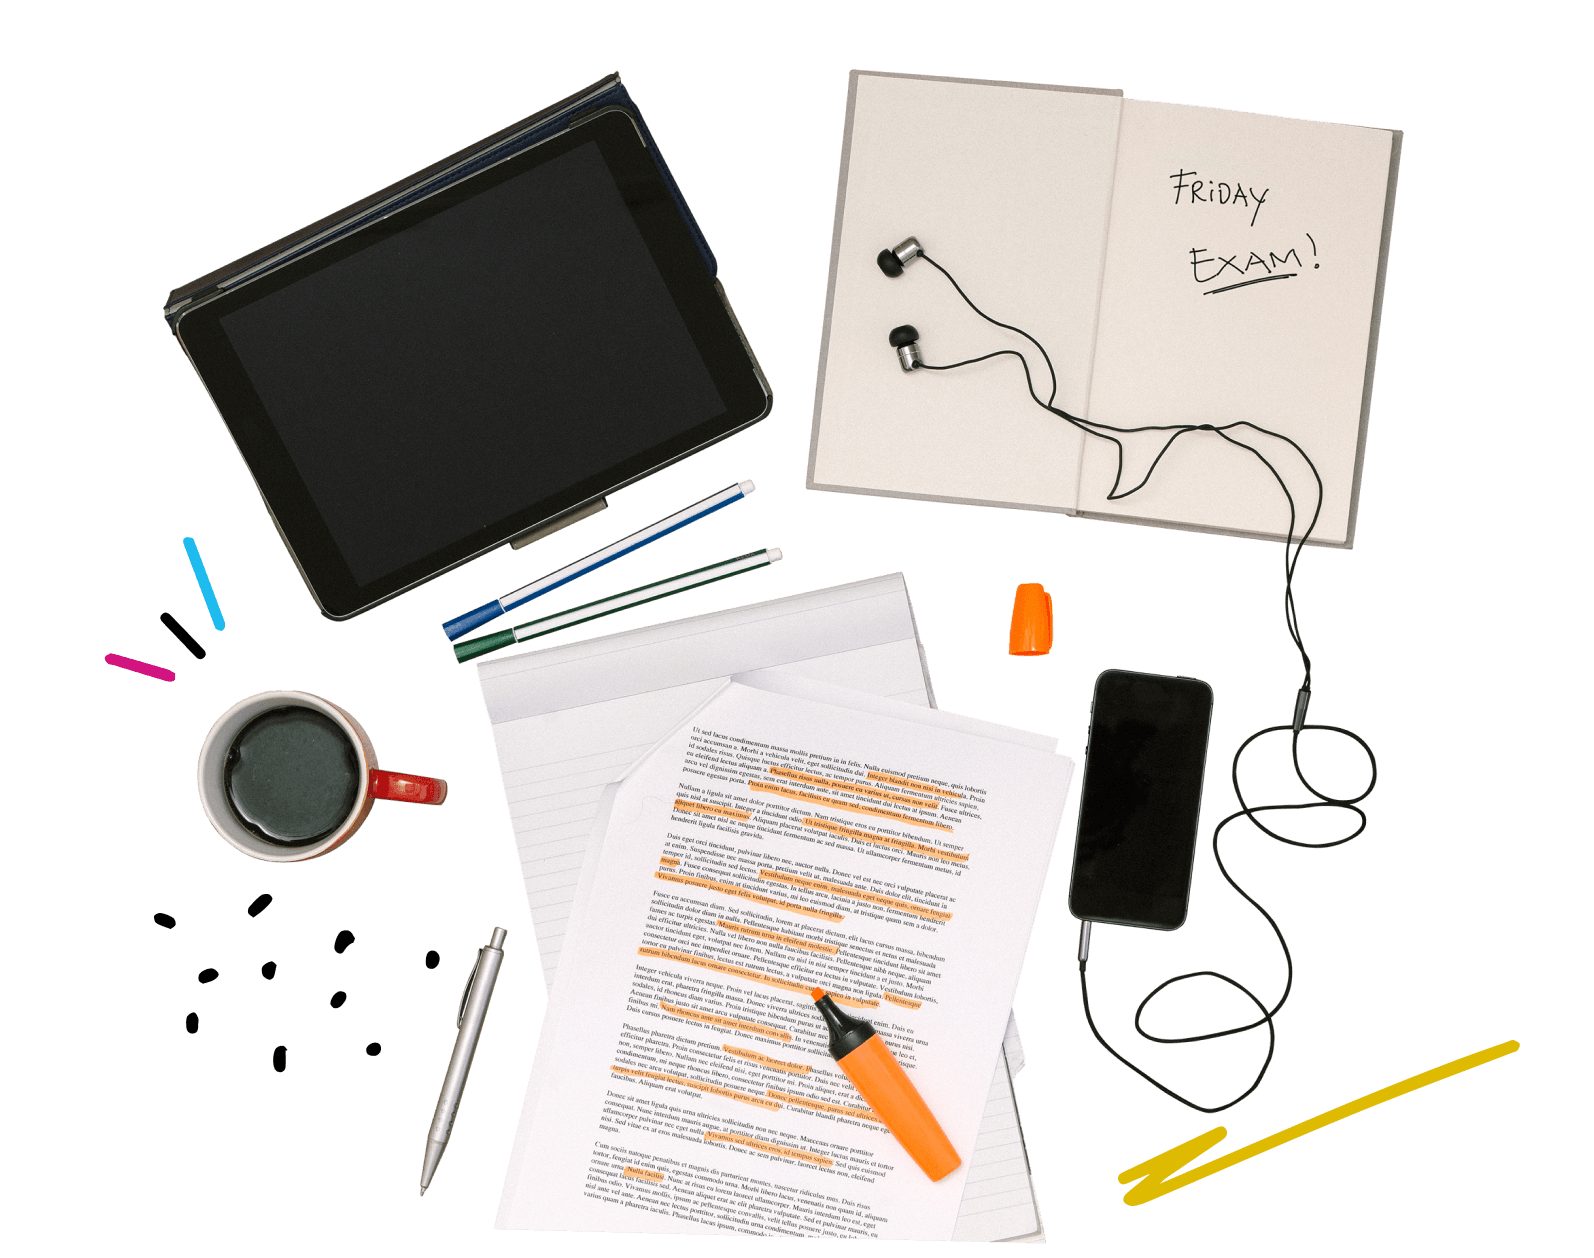 Shmoop test prep materials including a laptop, notebooks, pencils, and a cup of coffee, set out for a study session